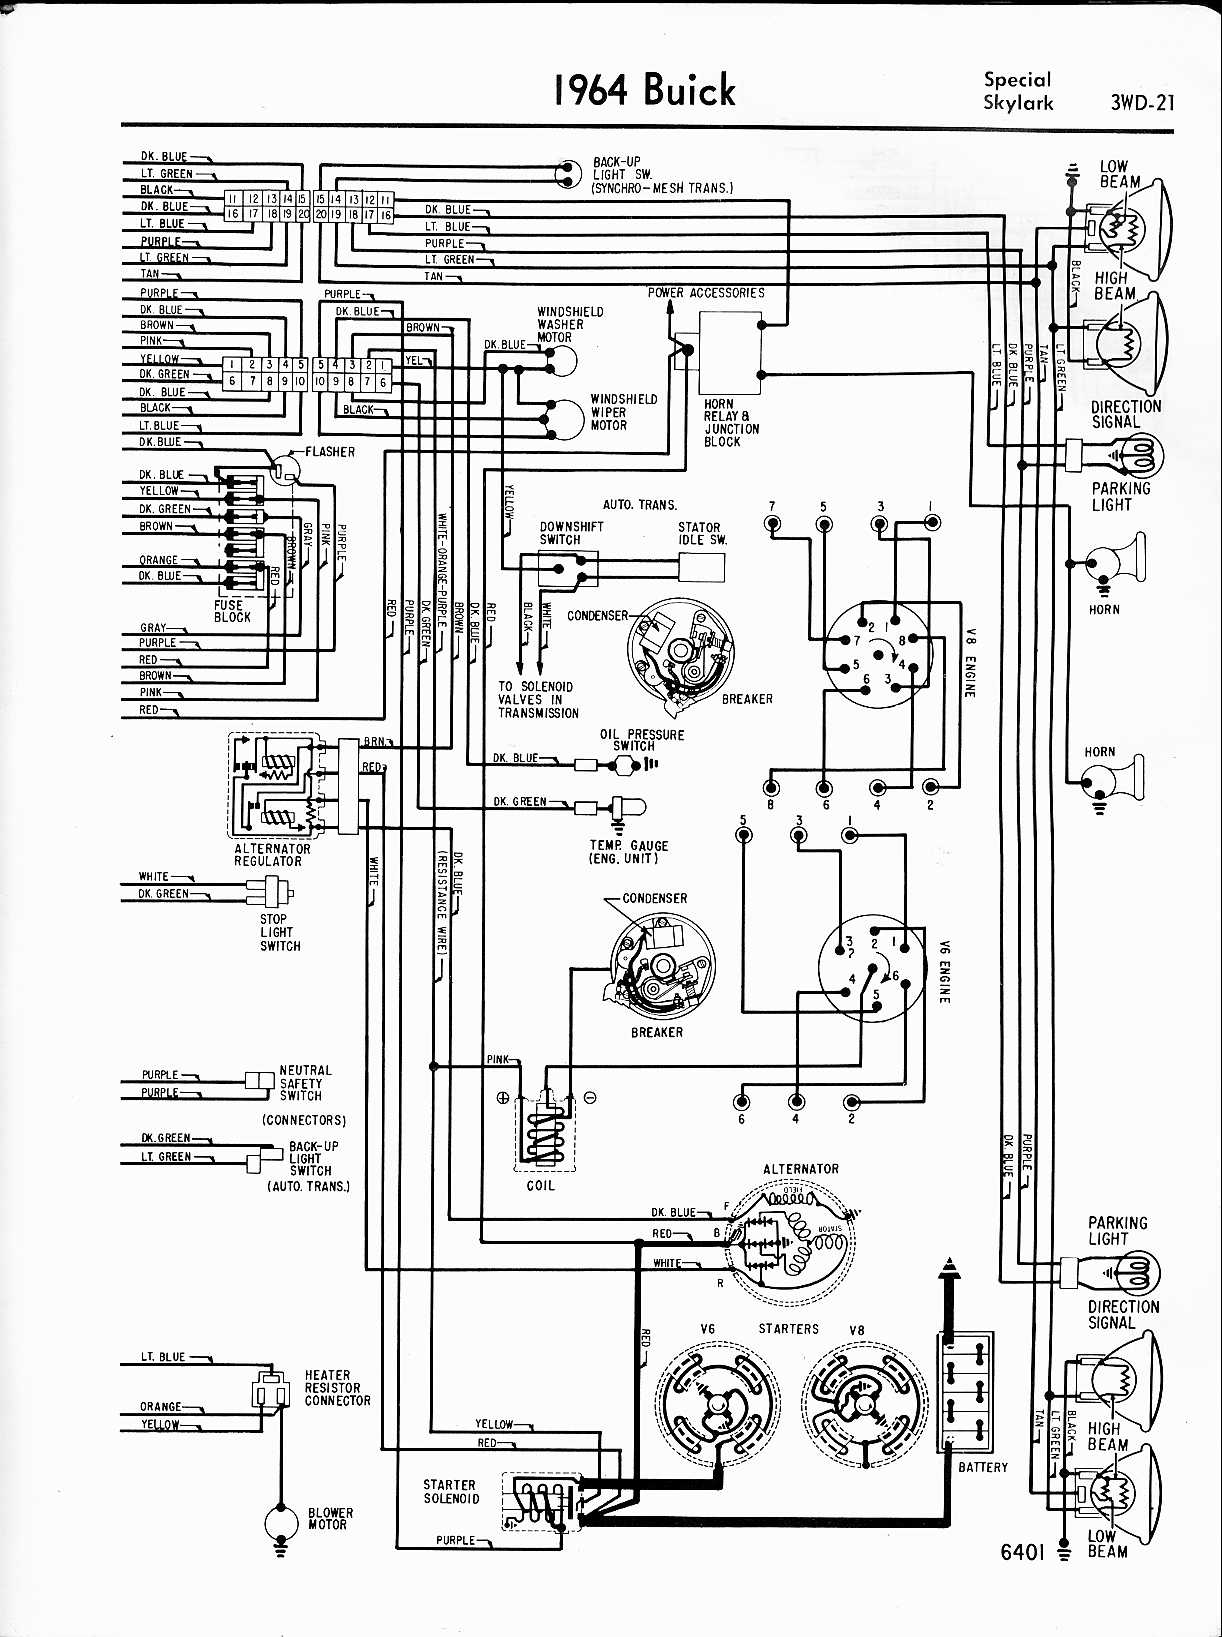 039 70 Chevelle Ss Fuse Box Wiring Diagram FULL HD Quality